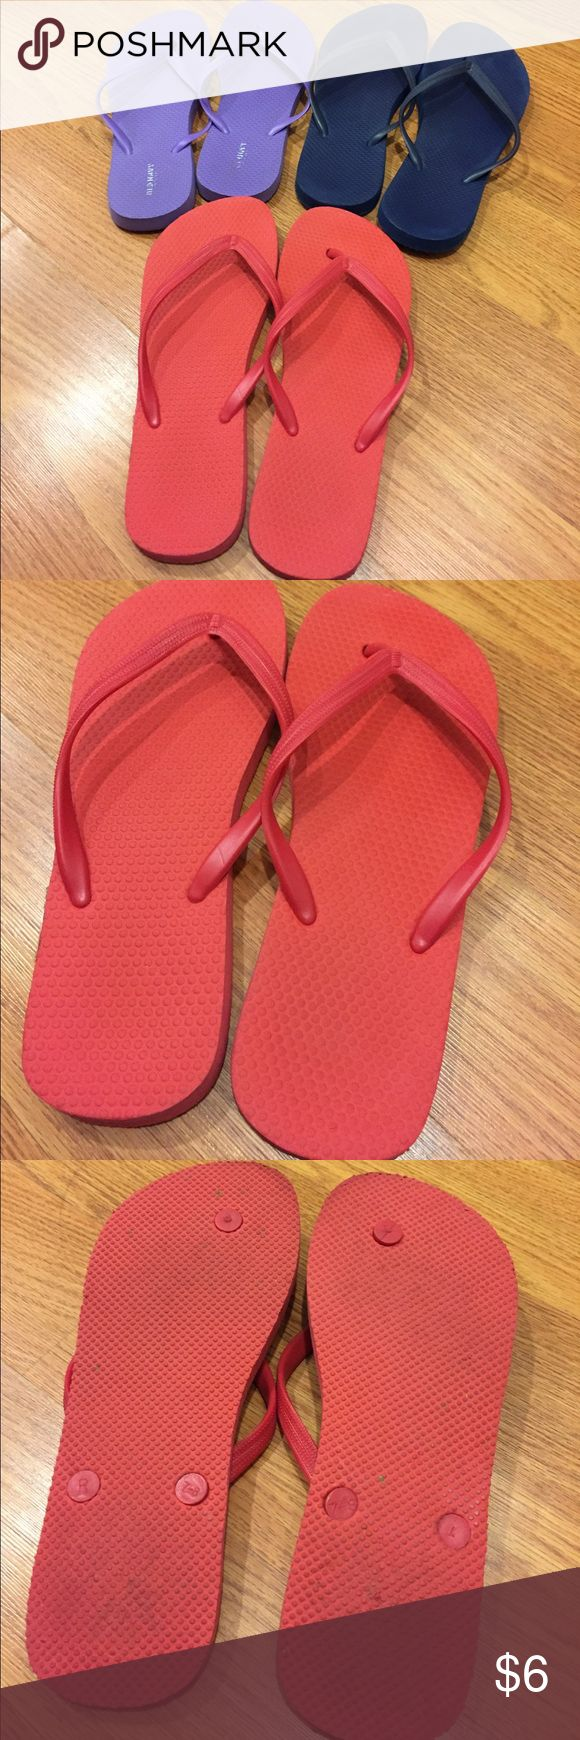 Black sandals old navy - Three Pair Of Old Navy Flip Flops Size 7 8 Red Navy And Purple